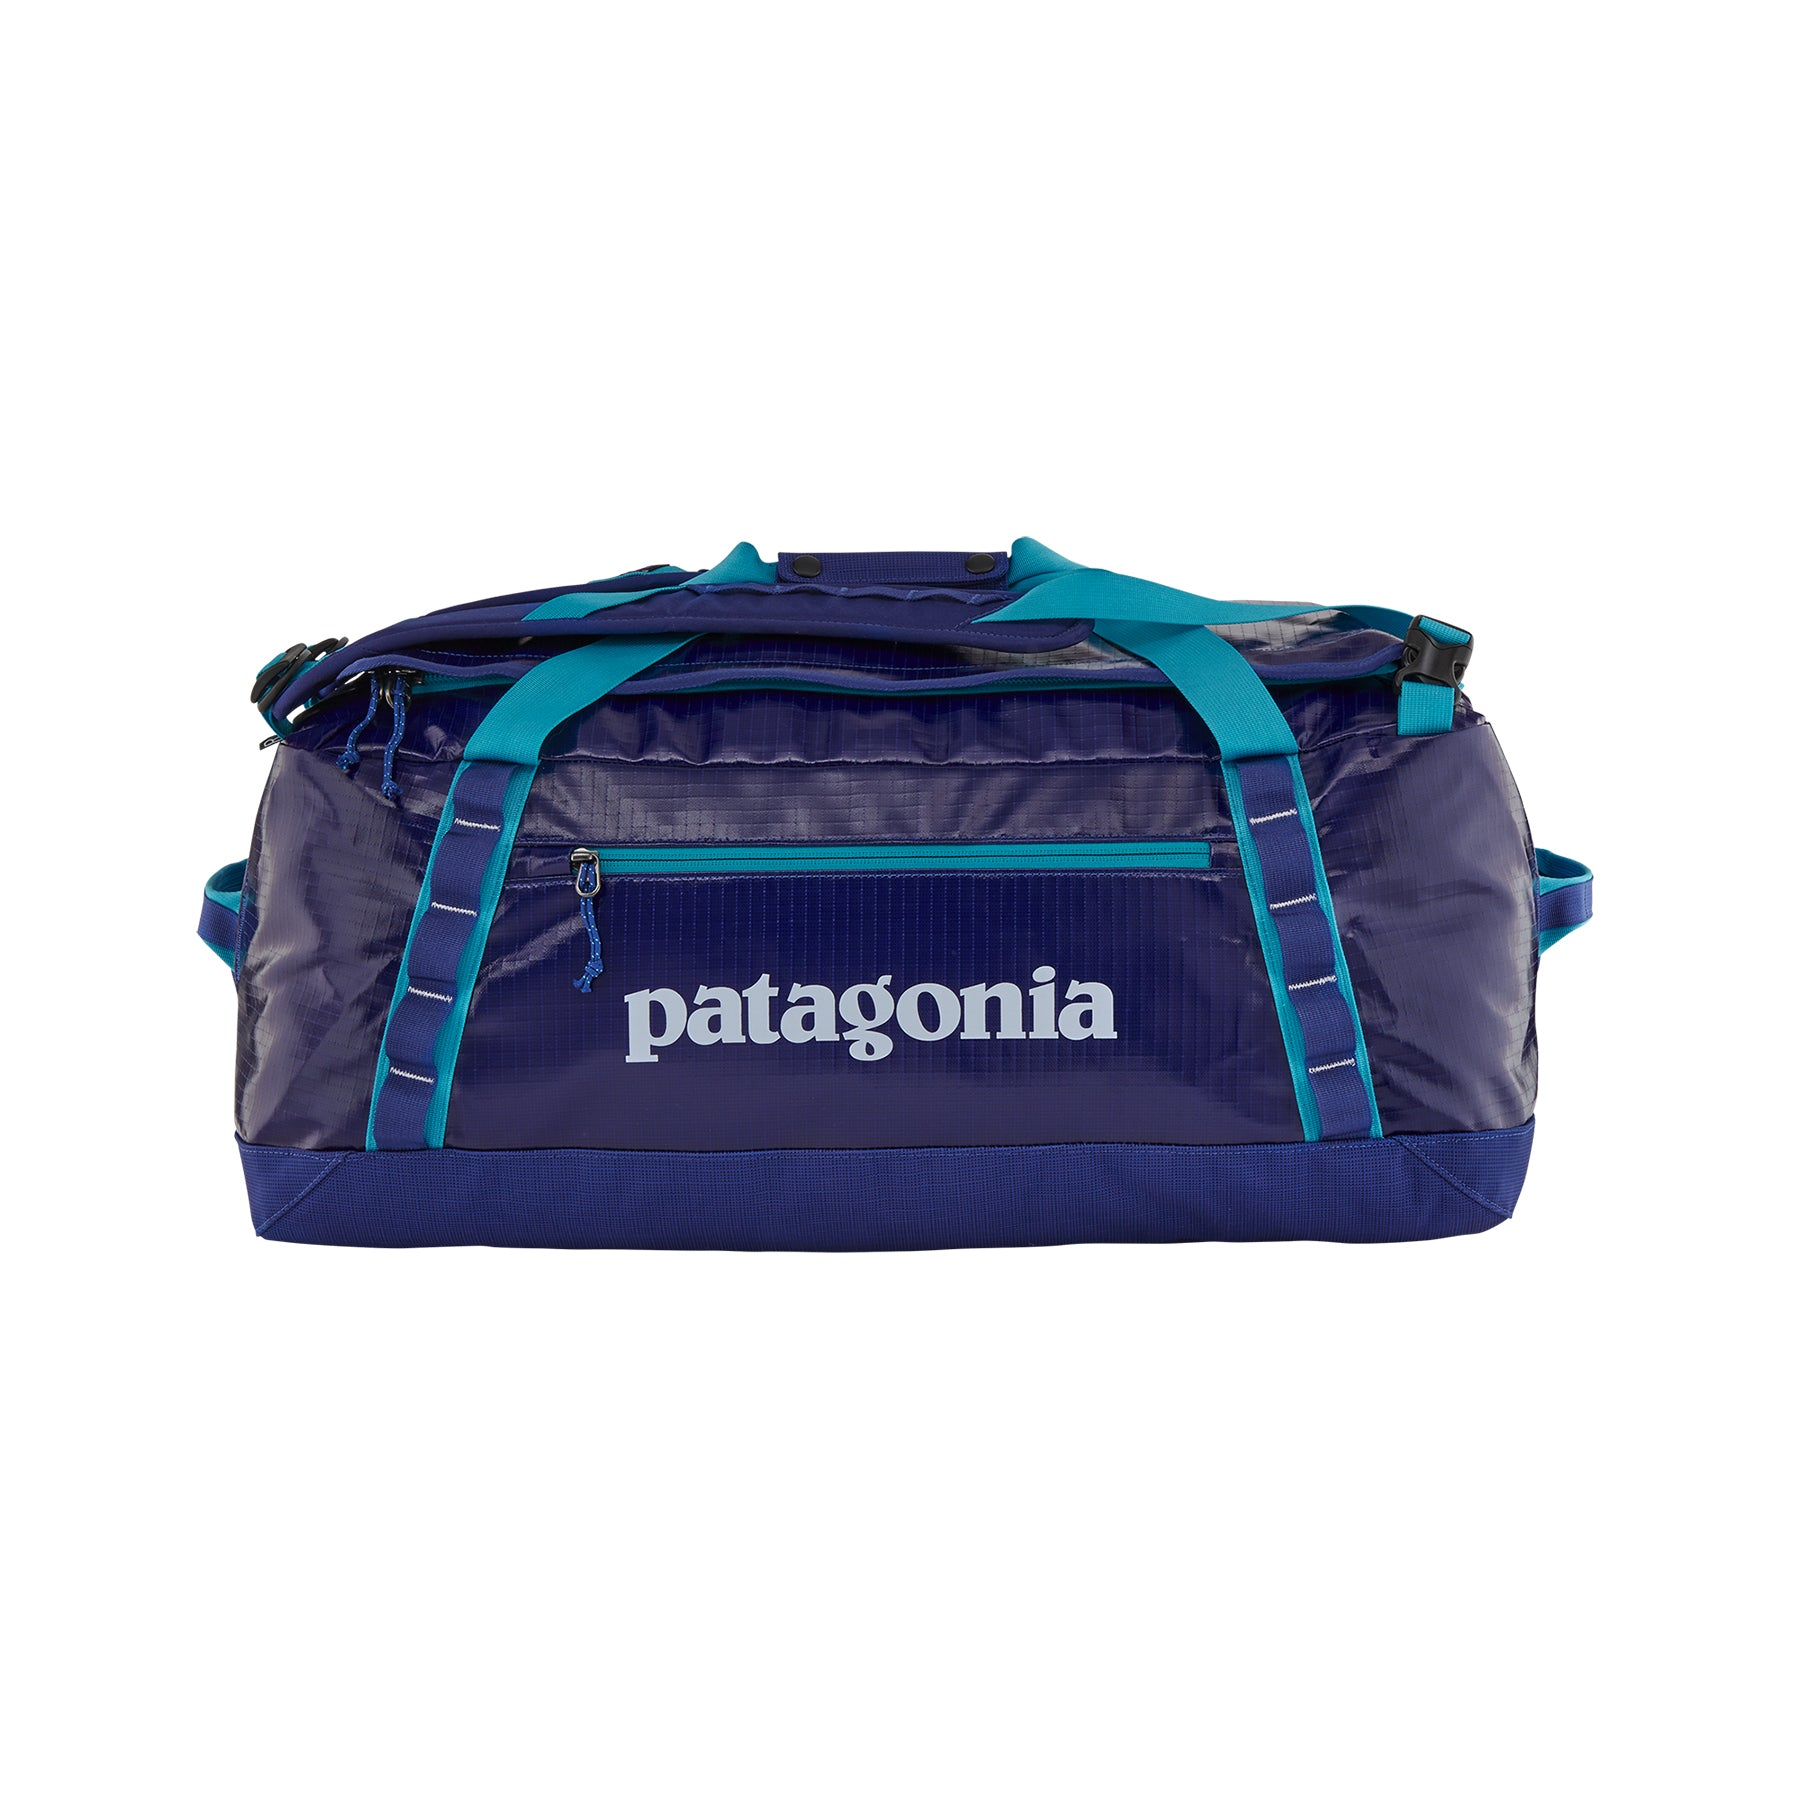 Patagonia Black Hole Duffel 55L in Colbalt Blue